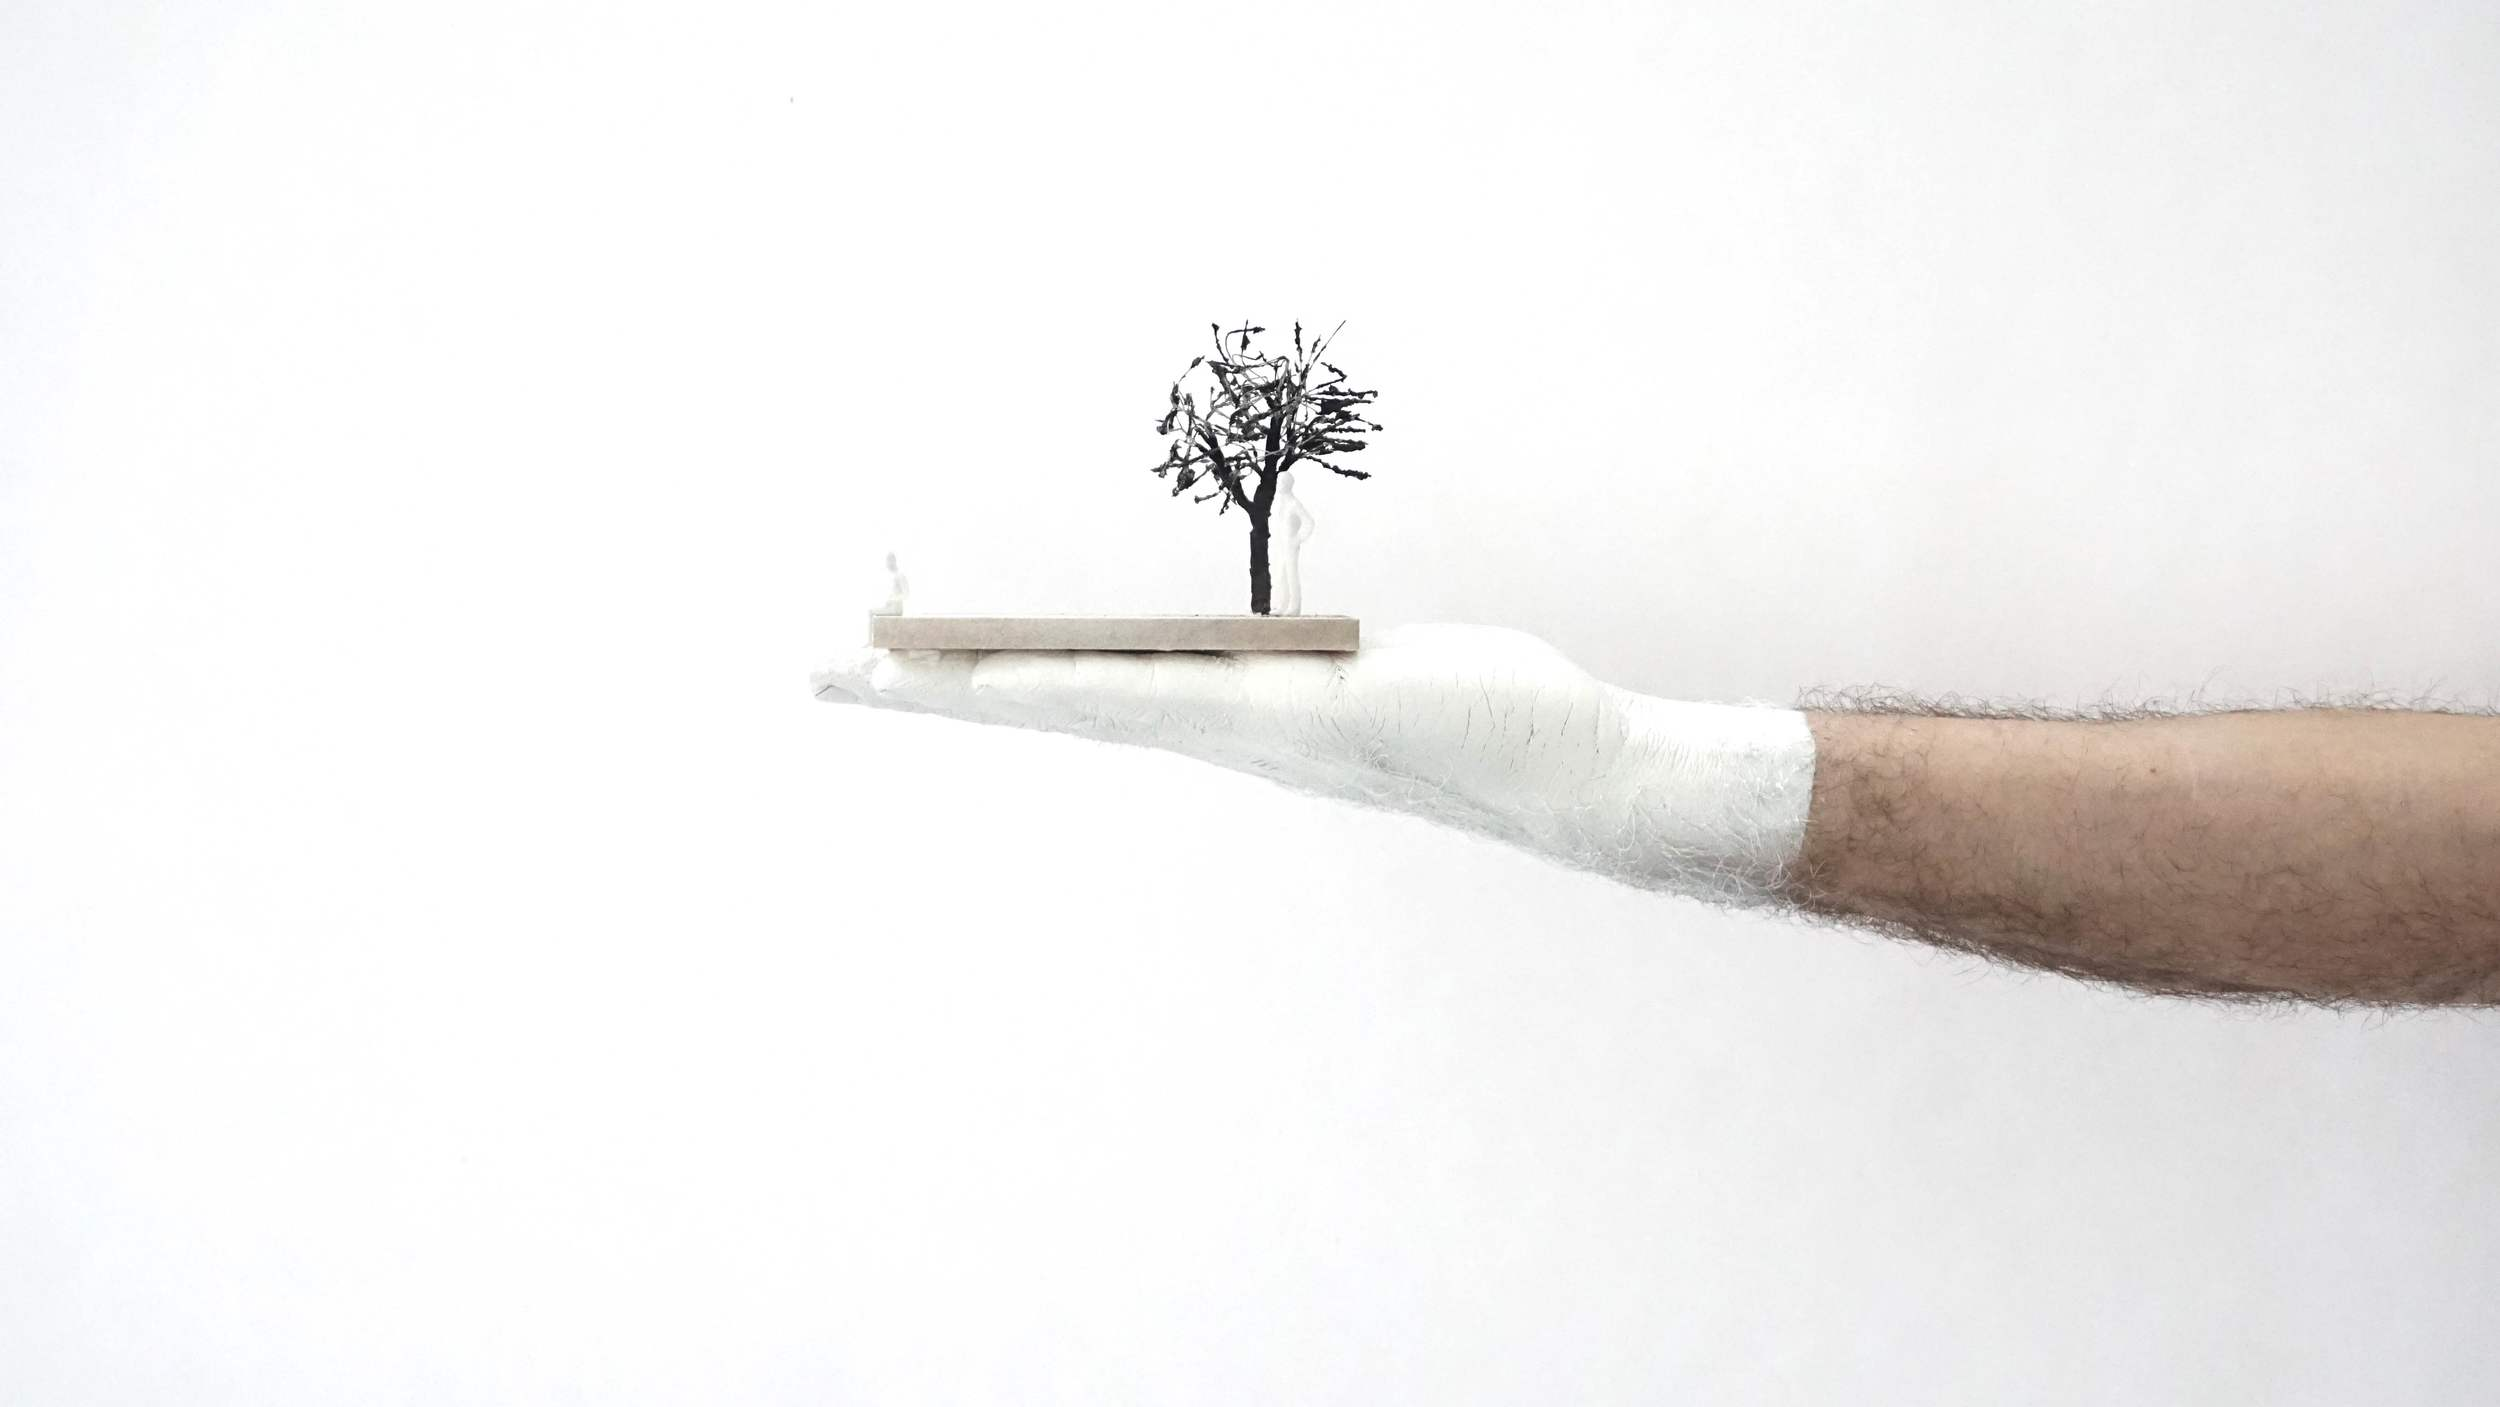 8by12 Poetry by Miniature Objects